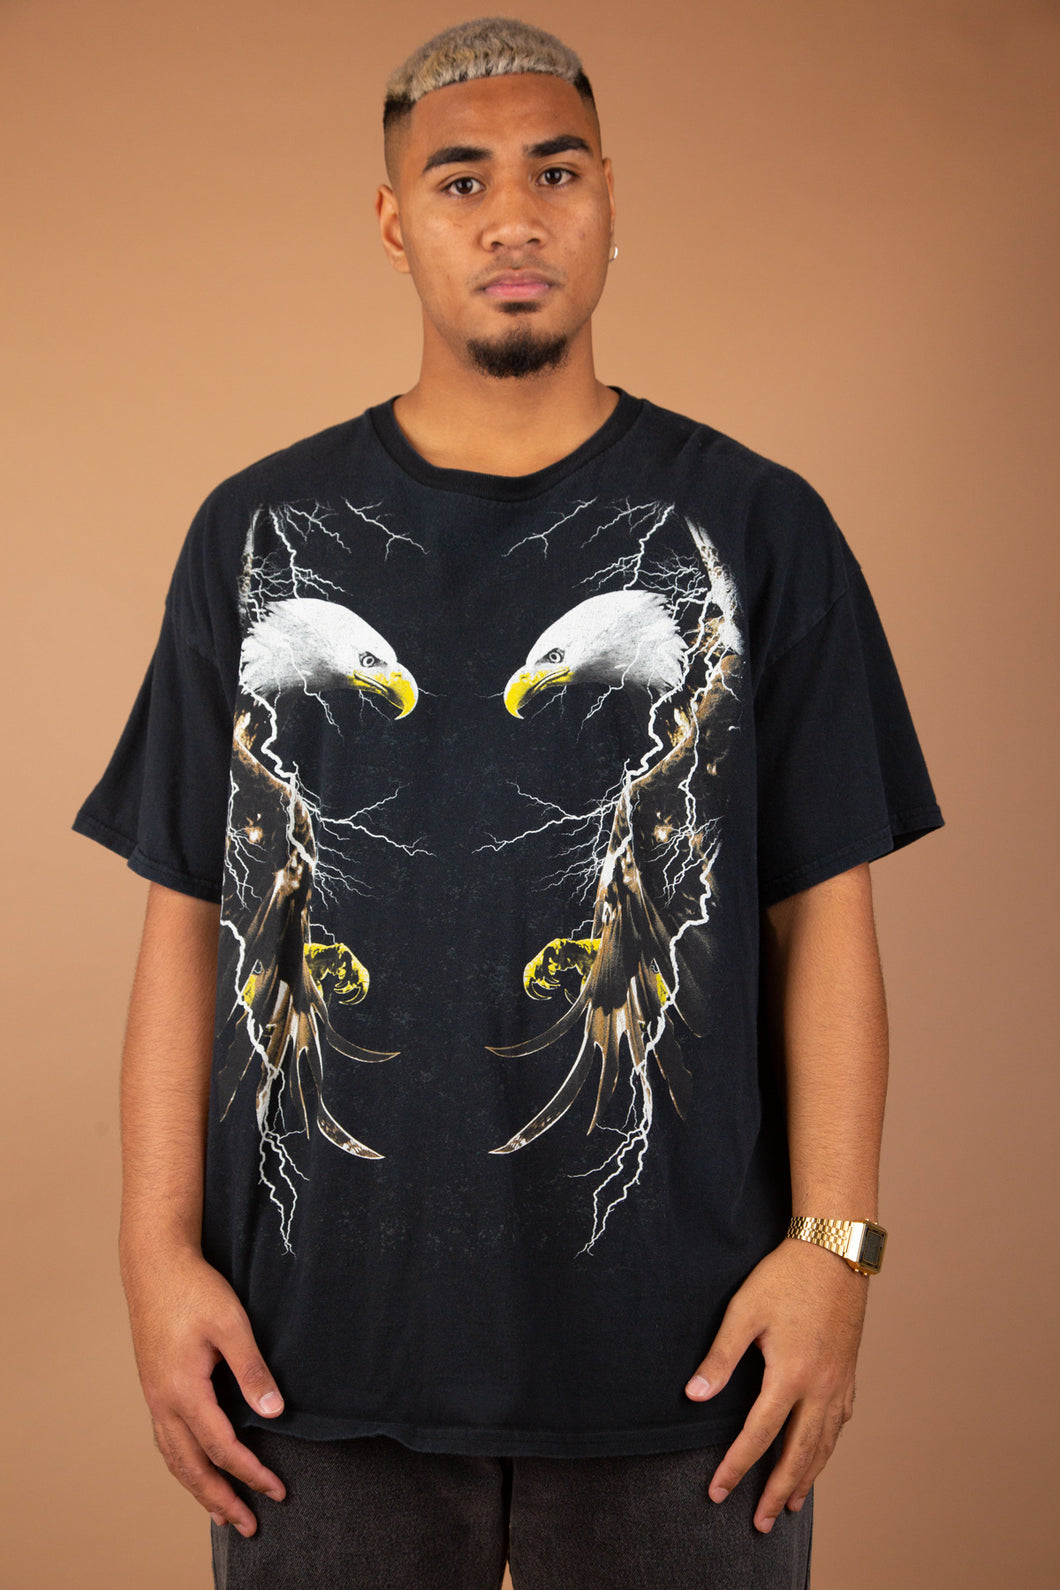 baggy black tee with epic eagle and lightning mirrored graphic on front